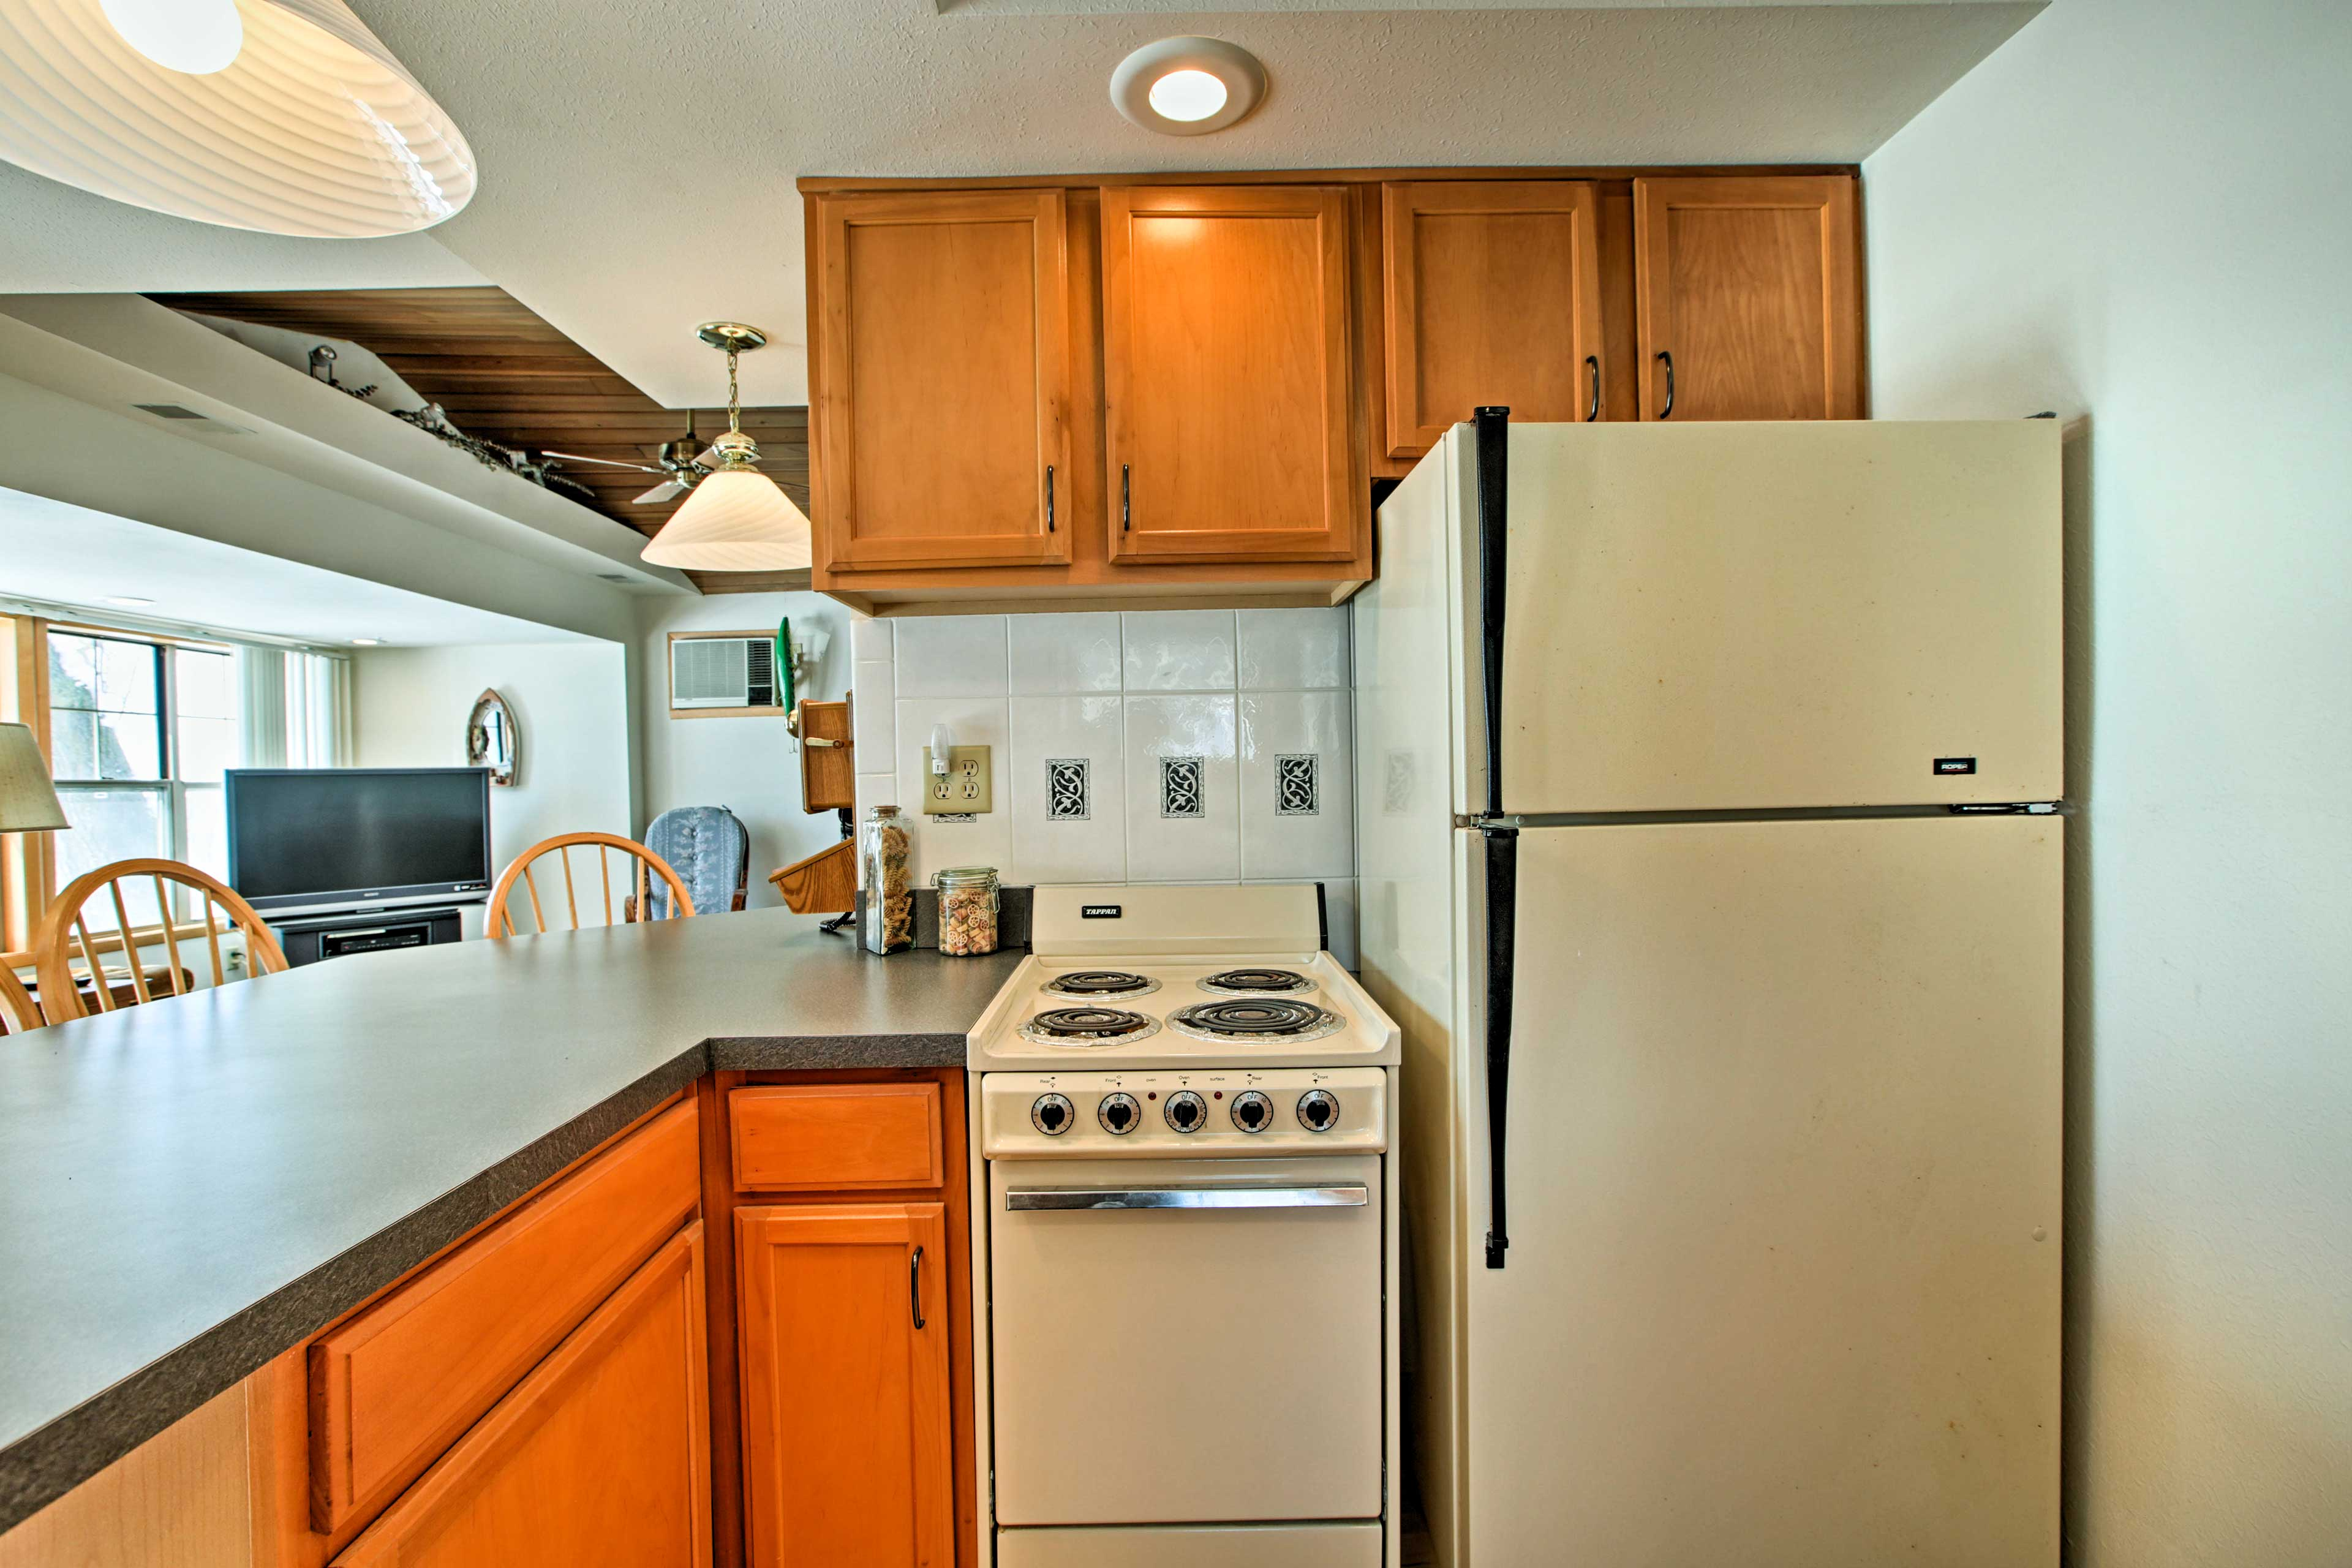 The fully equipped kitchen has all of the cooking essentials.